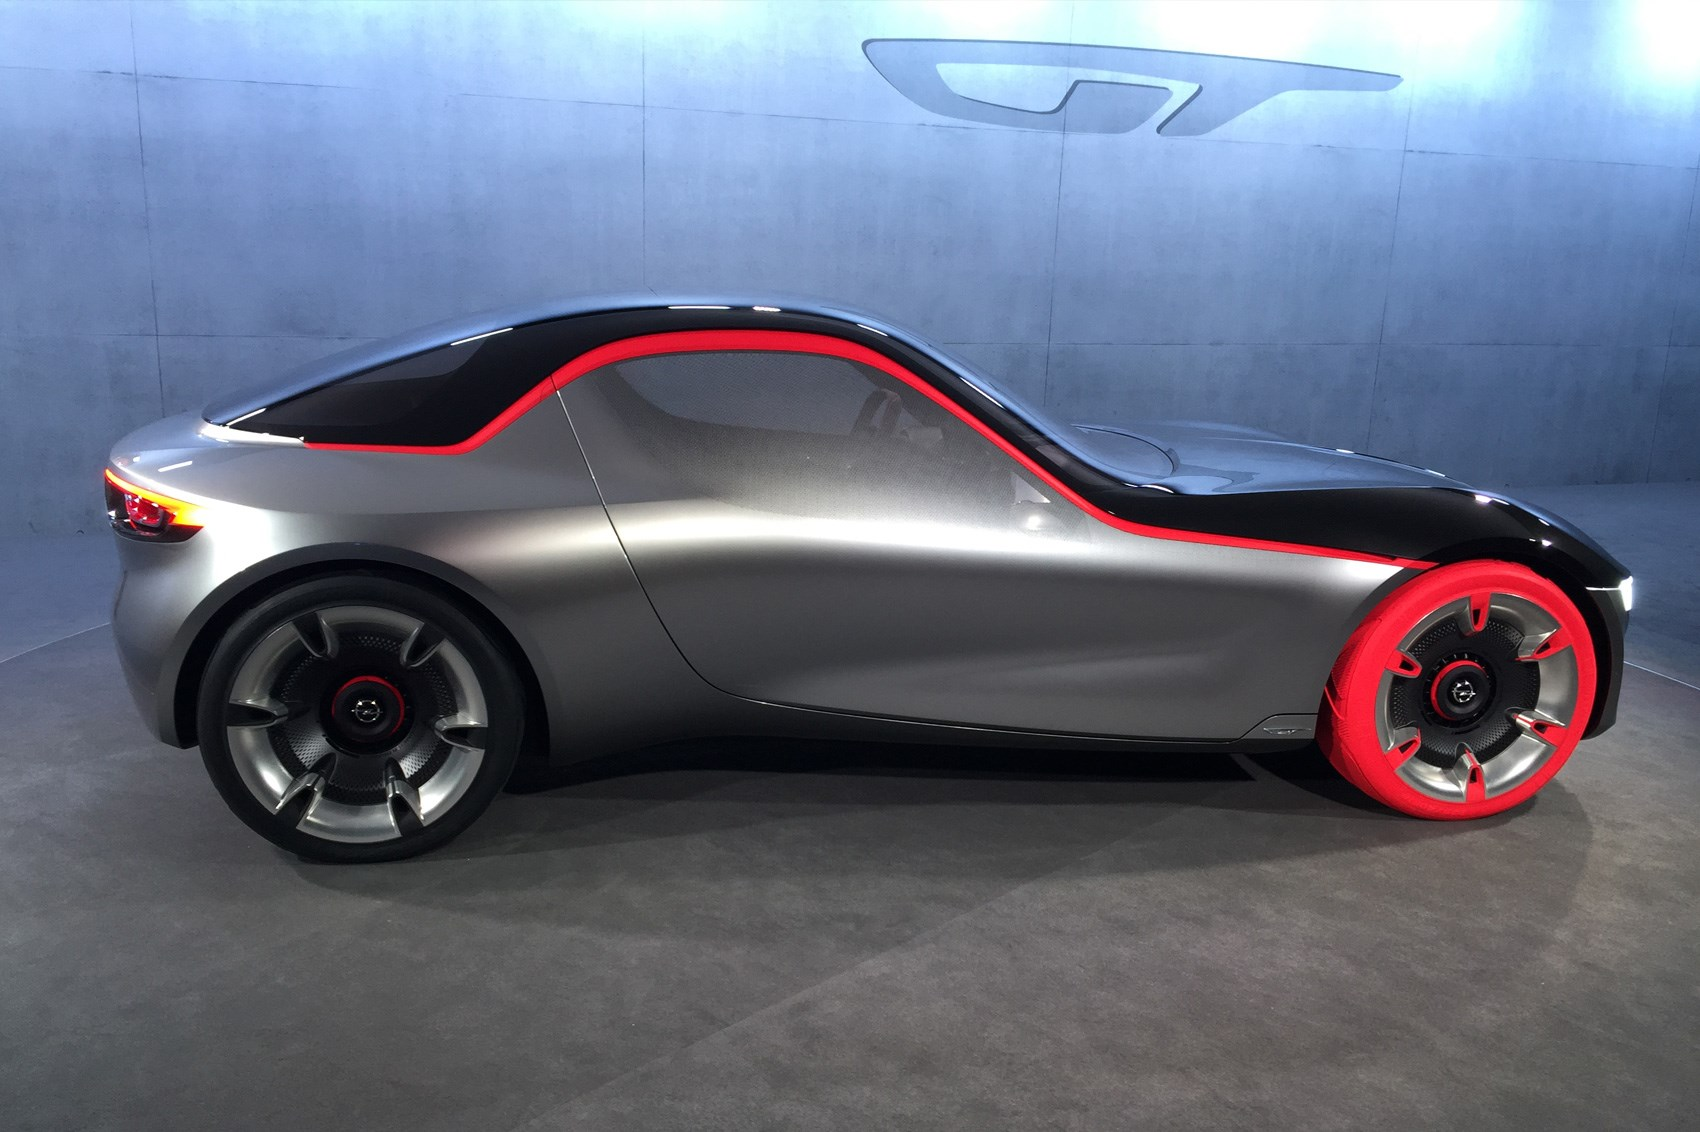 opel gt concept revealed at geneva 2016 vauxhall s sports car surprise by car magazine. Black Bedroom Furniture Sets. Home Design Ideas